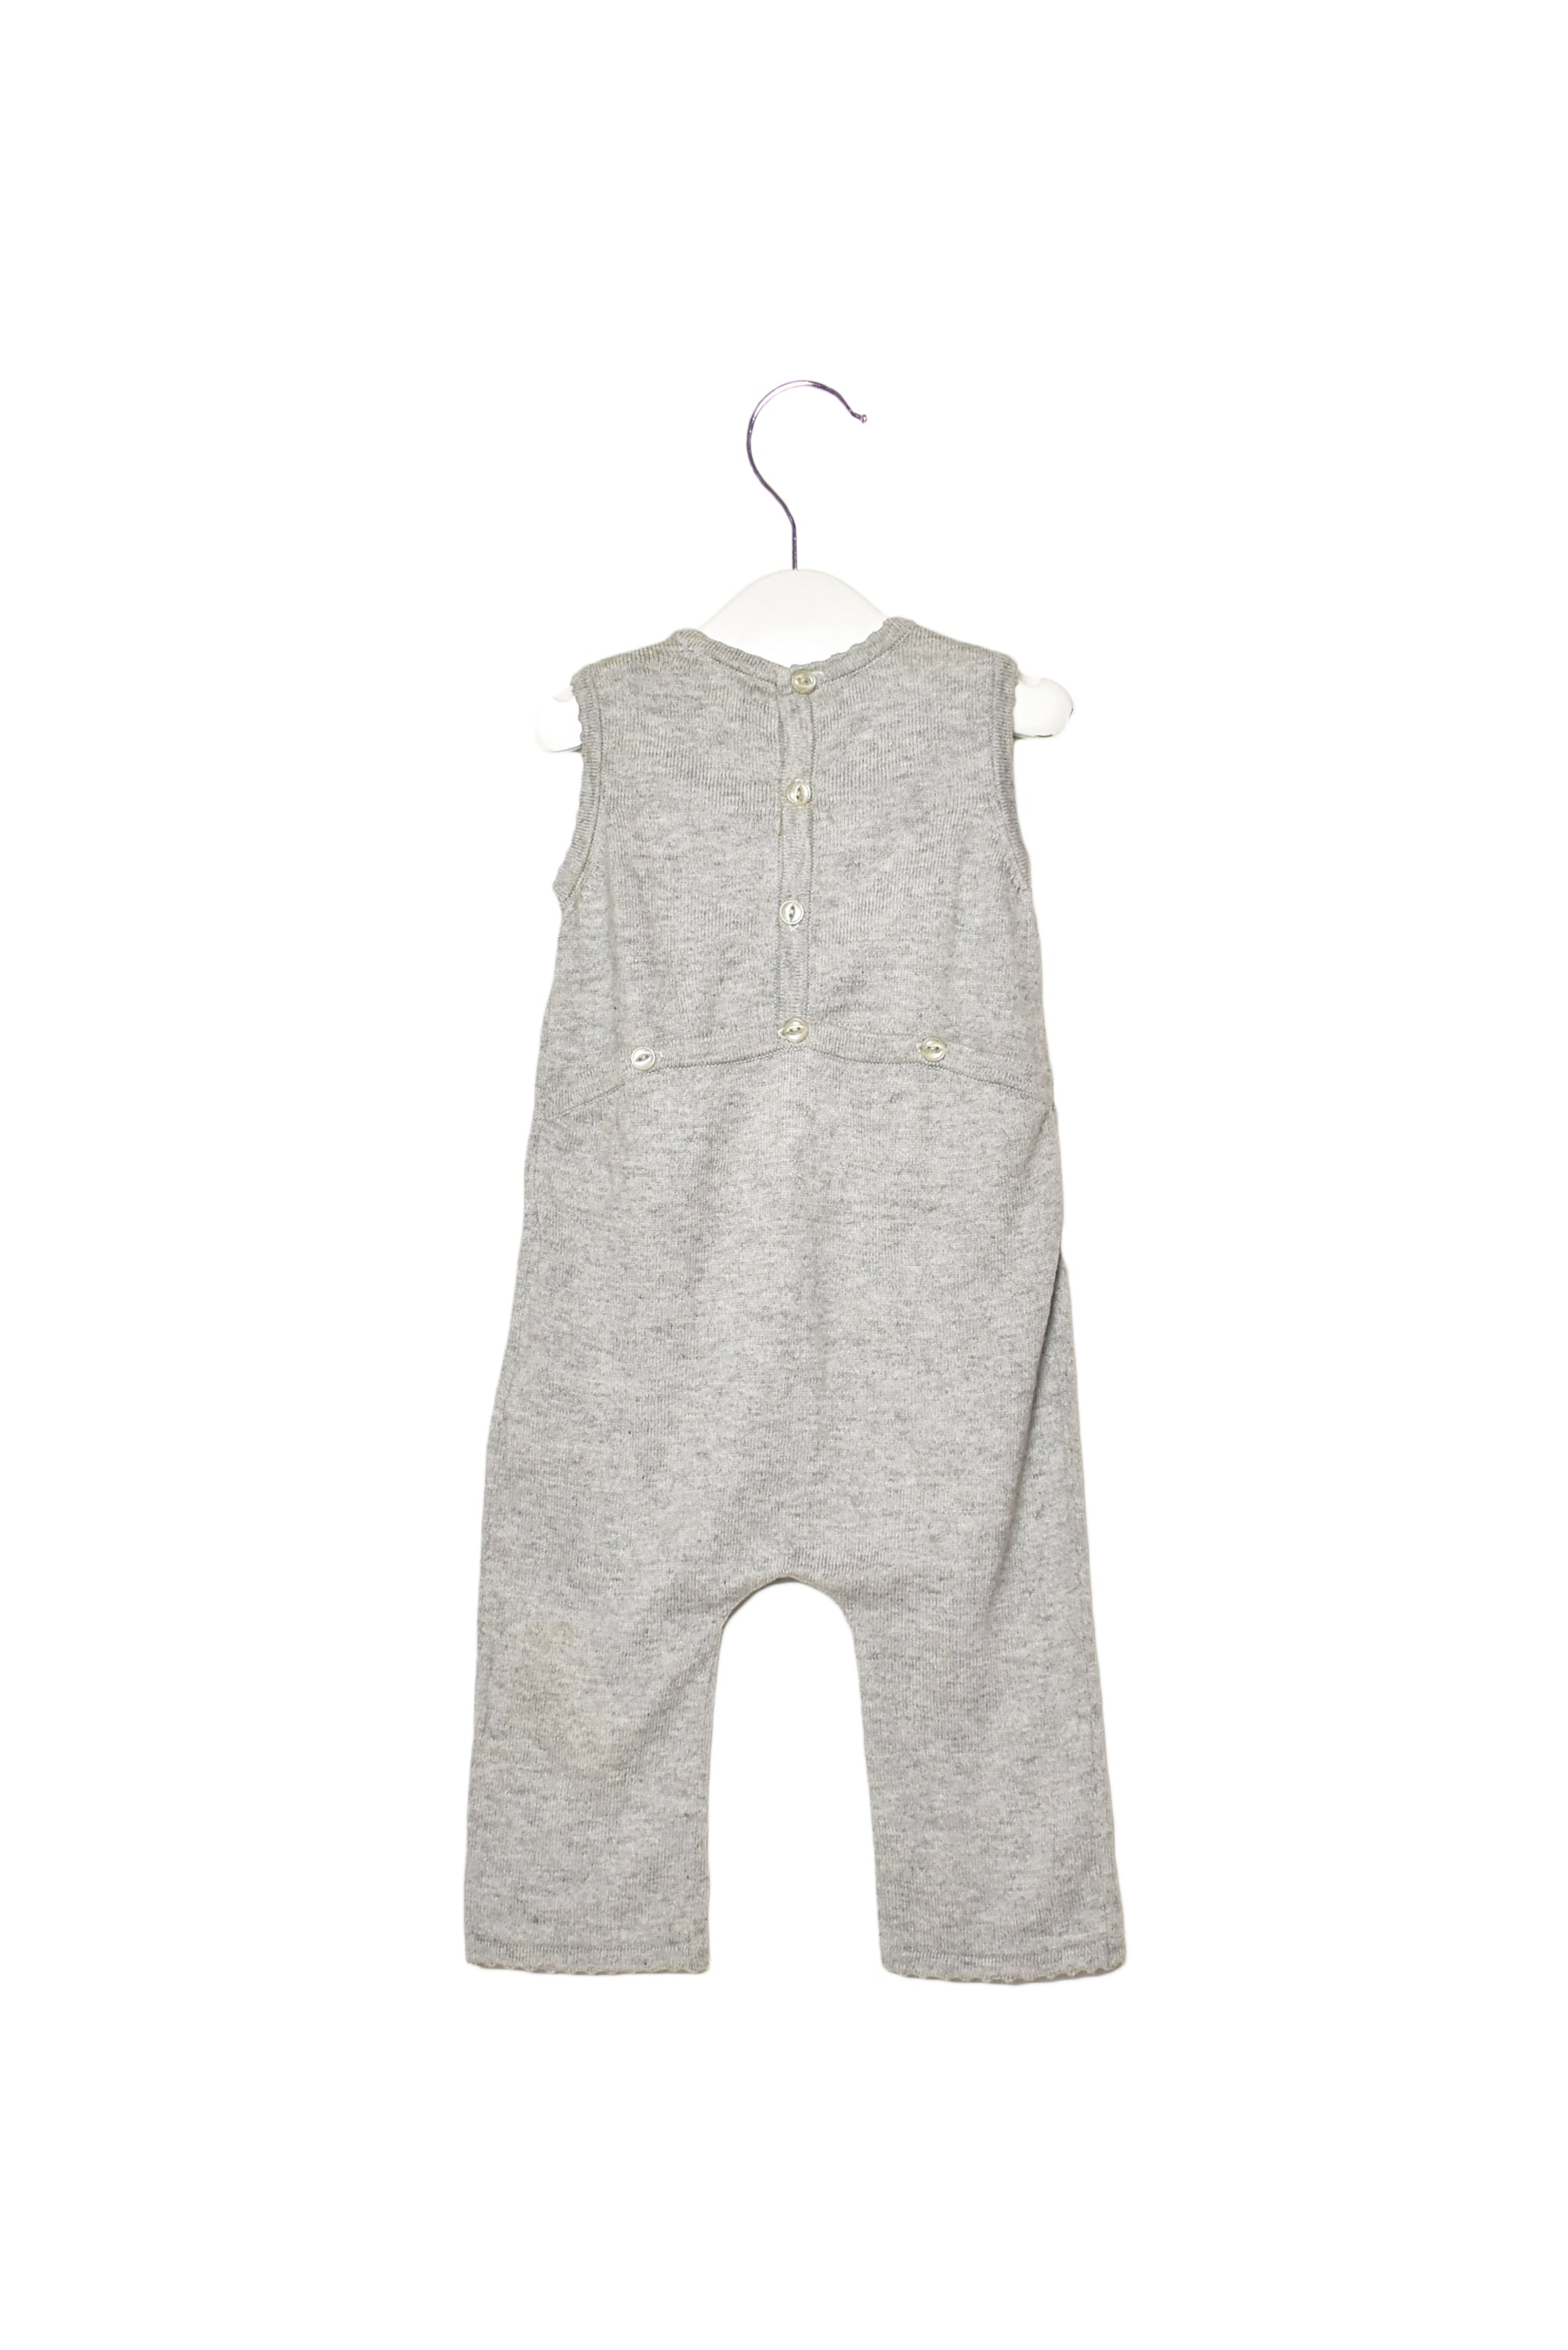 10012117 Cyrillus Baby ~ Jumpsuit 6M at Retykle